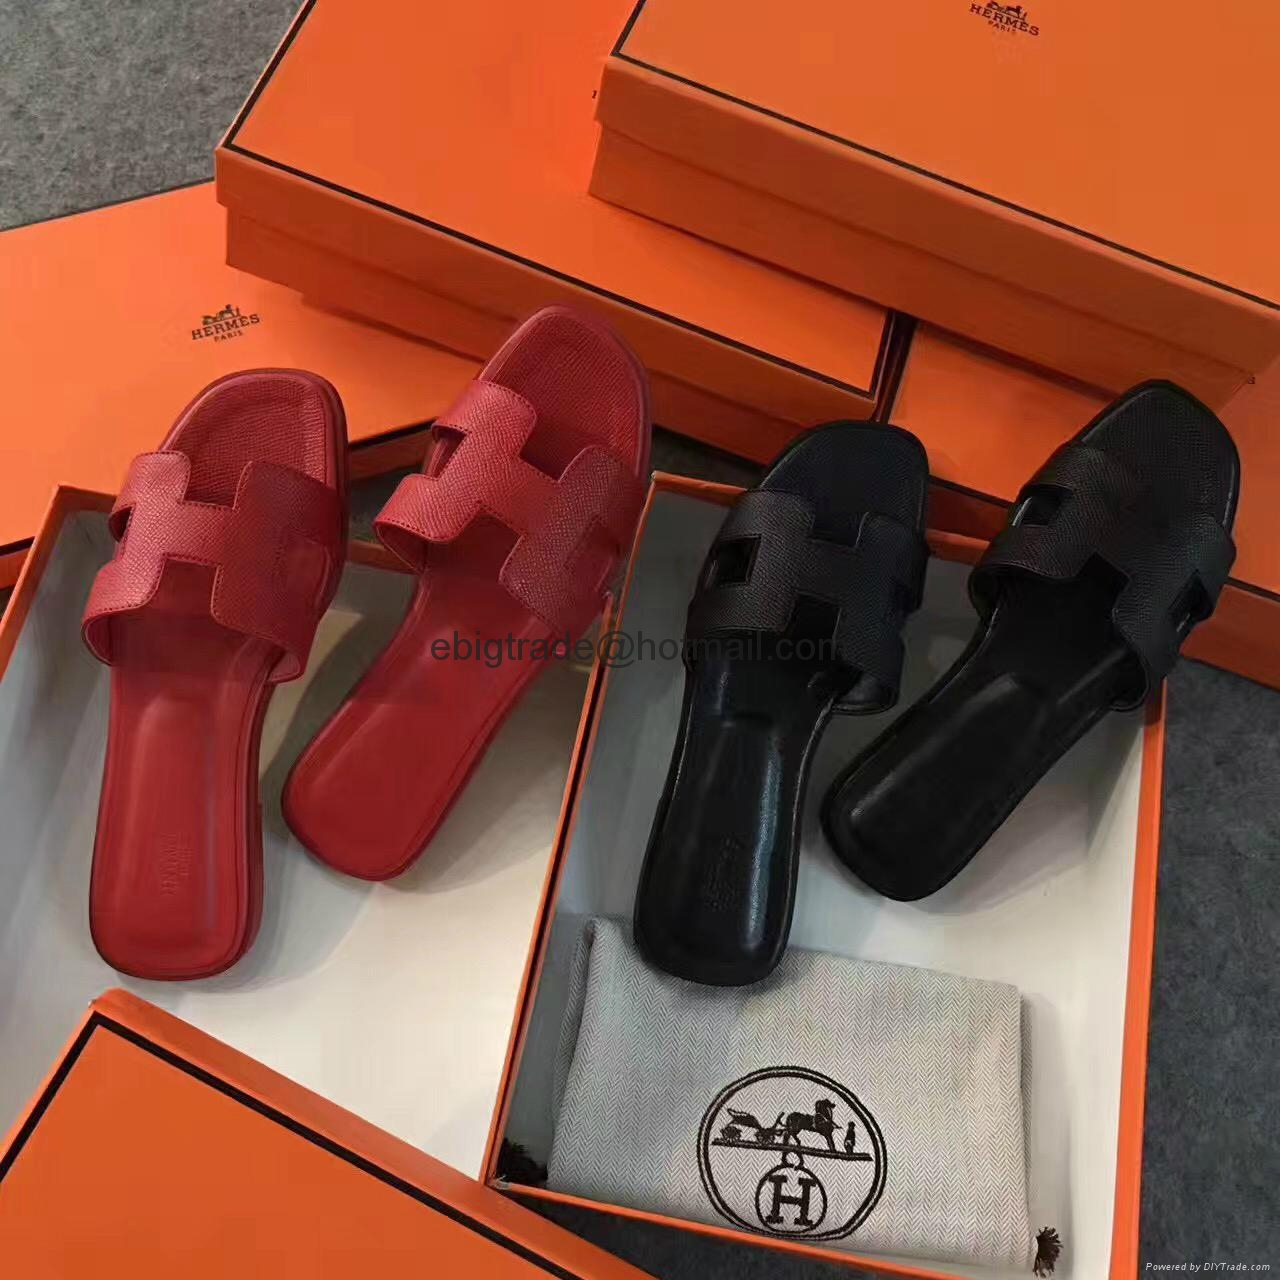 ed21d5c0449 Cheap Hermes Leather shoes Hermes sandals replica hermes shoes on ...